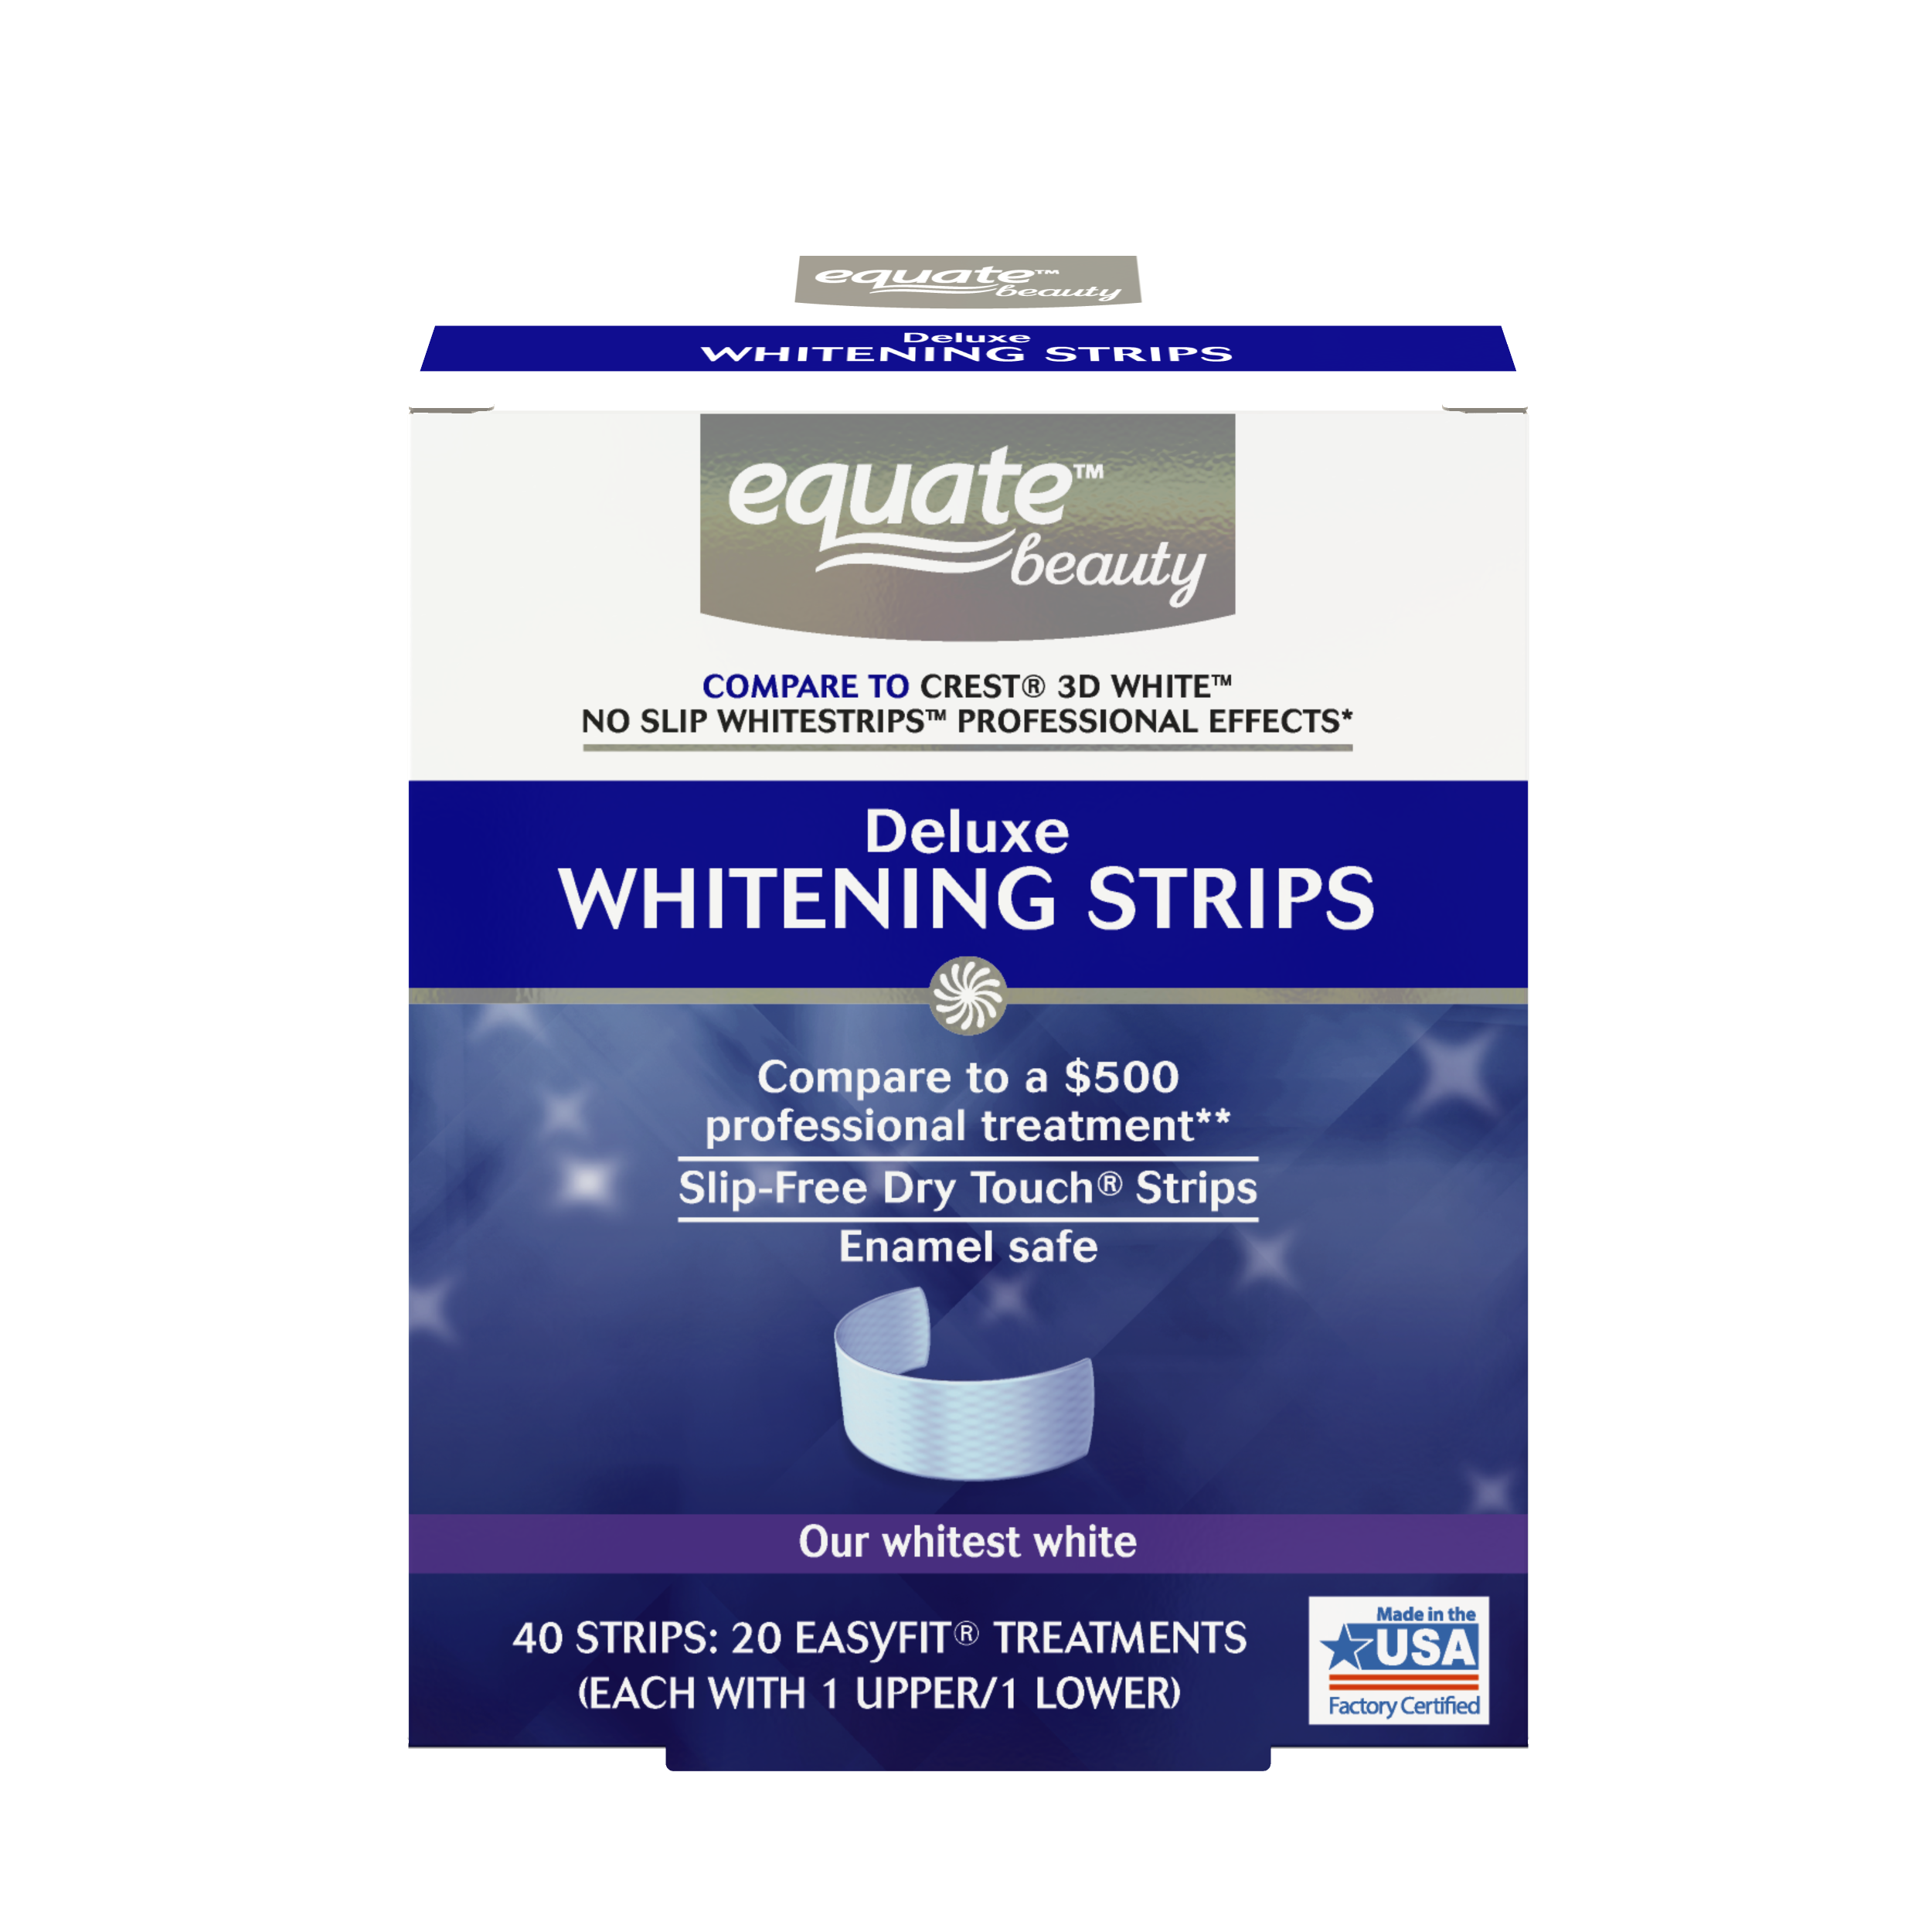 Equate Beauty Deluxe Teeth Whitening Strips, 20 Treatments (Compare to Crest 3D White Professional Effects)